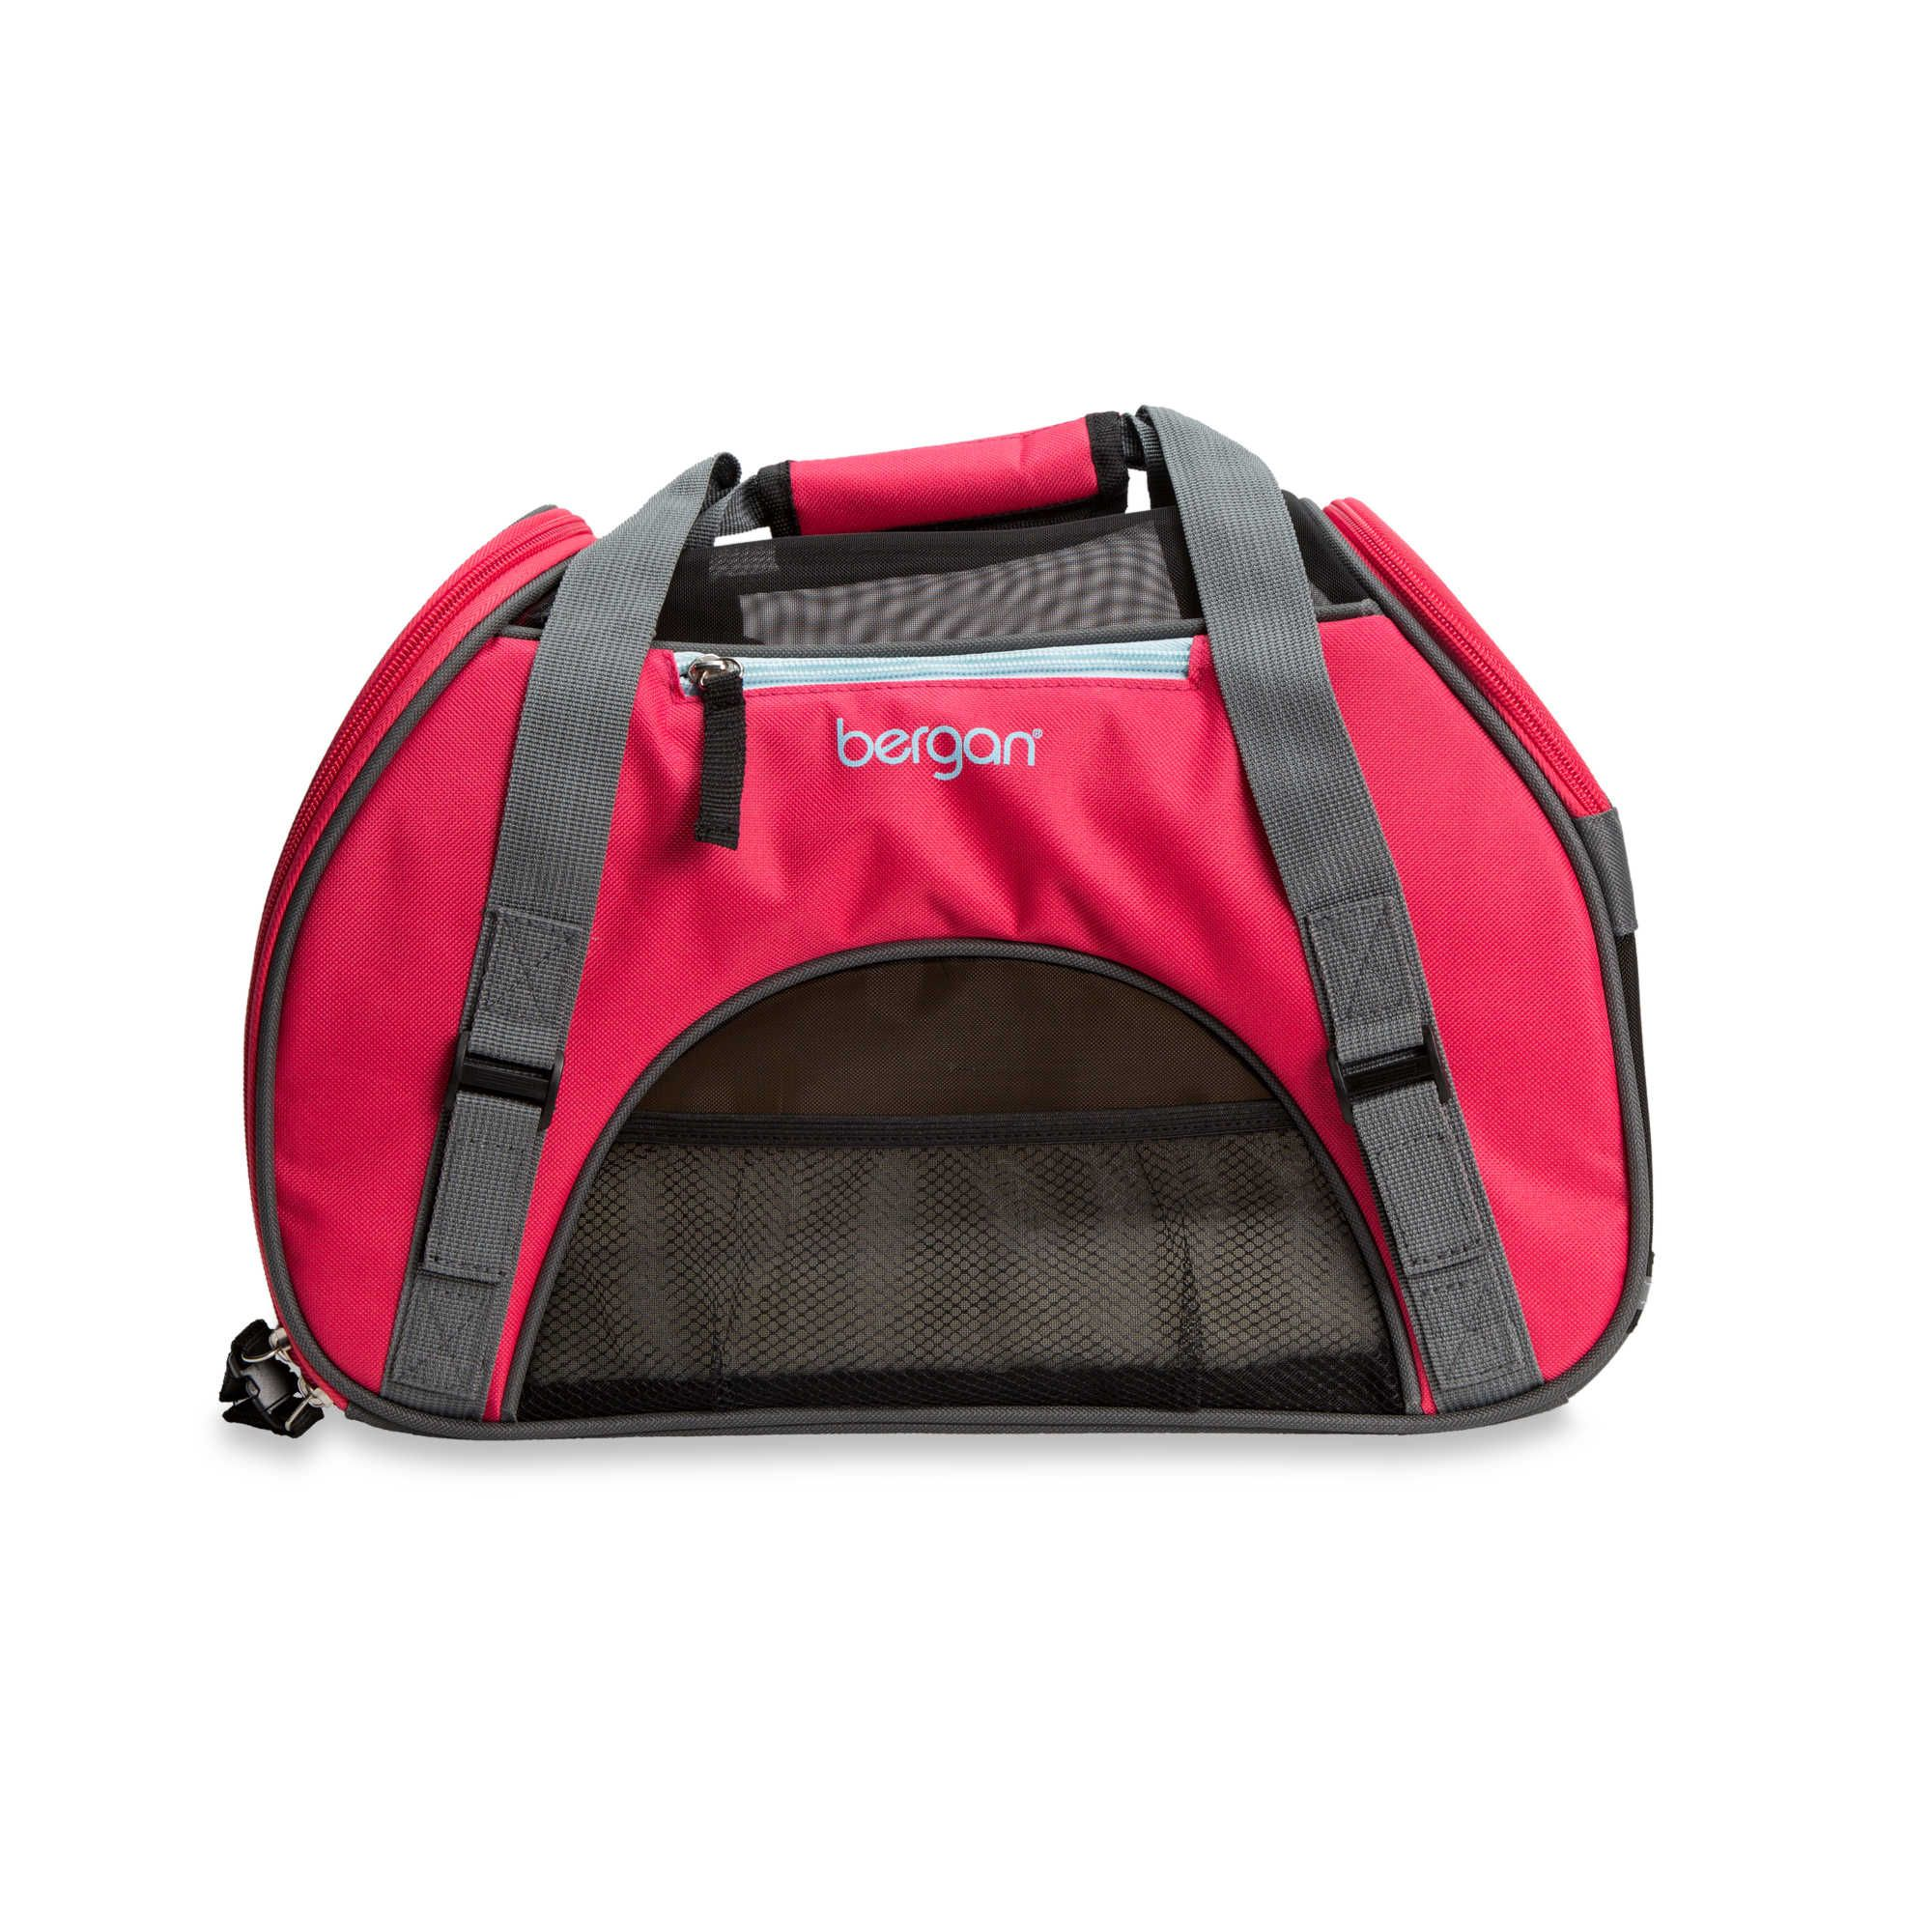 Bergan Original Comfort Carrier Dog Carrier Small Pets Pet Carriers